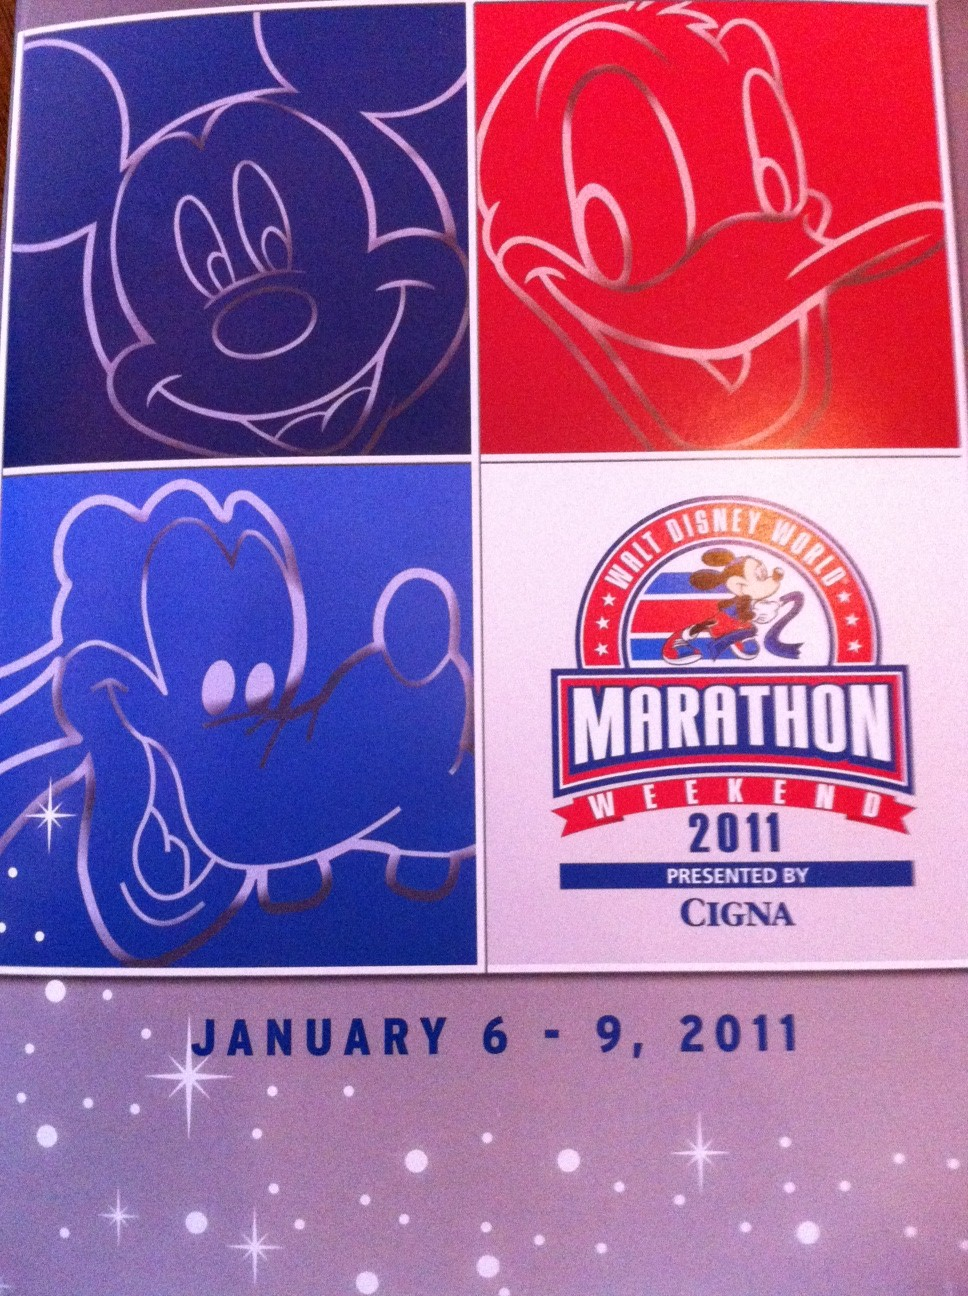 My Second Post For WDW Radio Running Disney: Ya Gotta Start Somewhere…